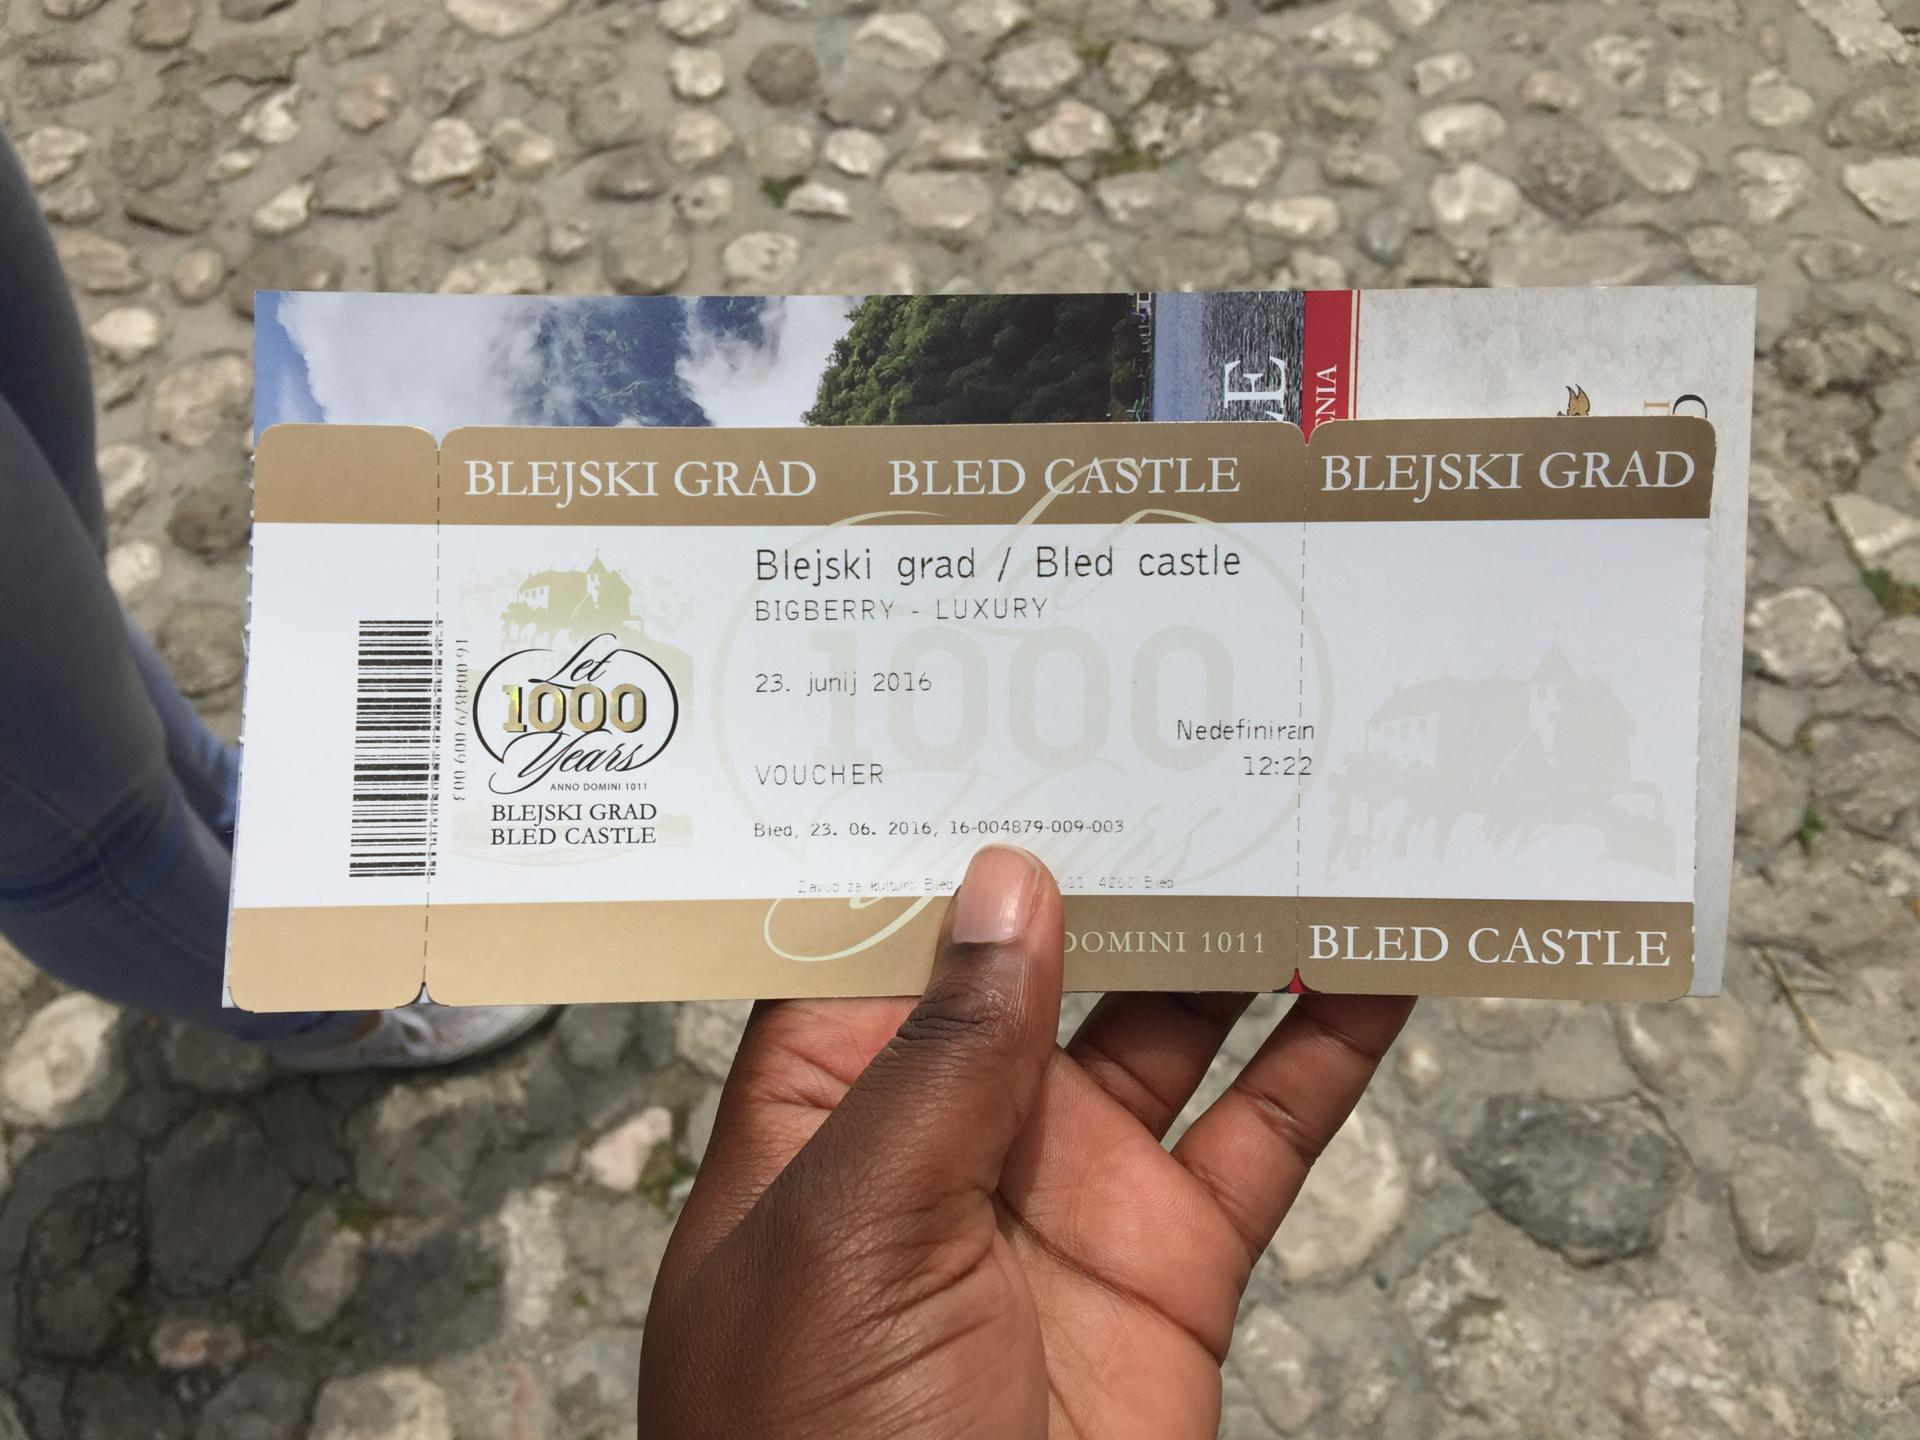 Bled Castle Ticket, Slovenia